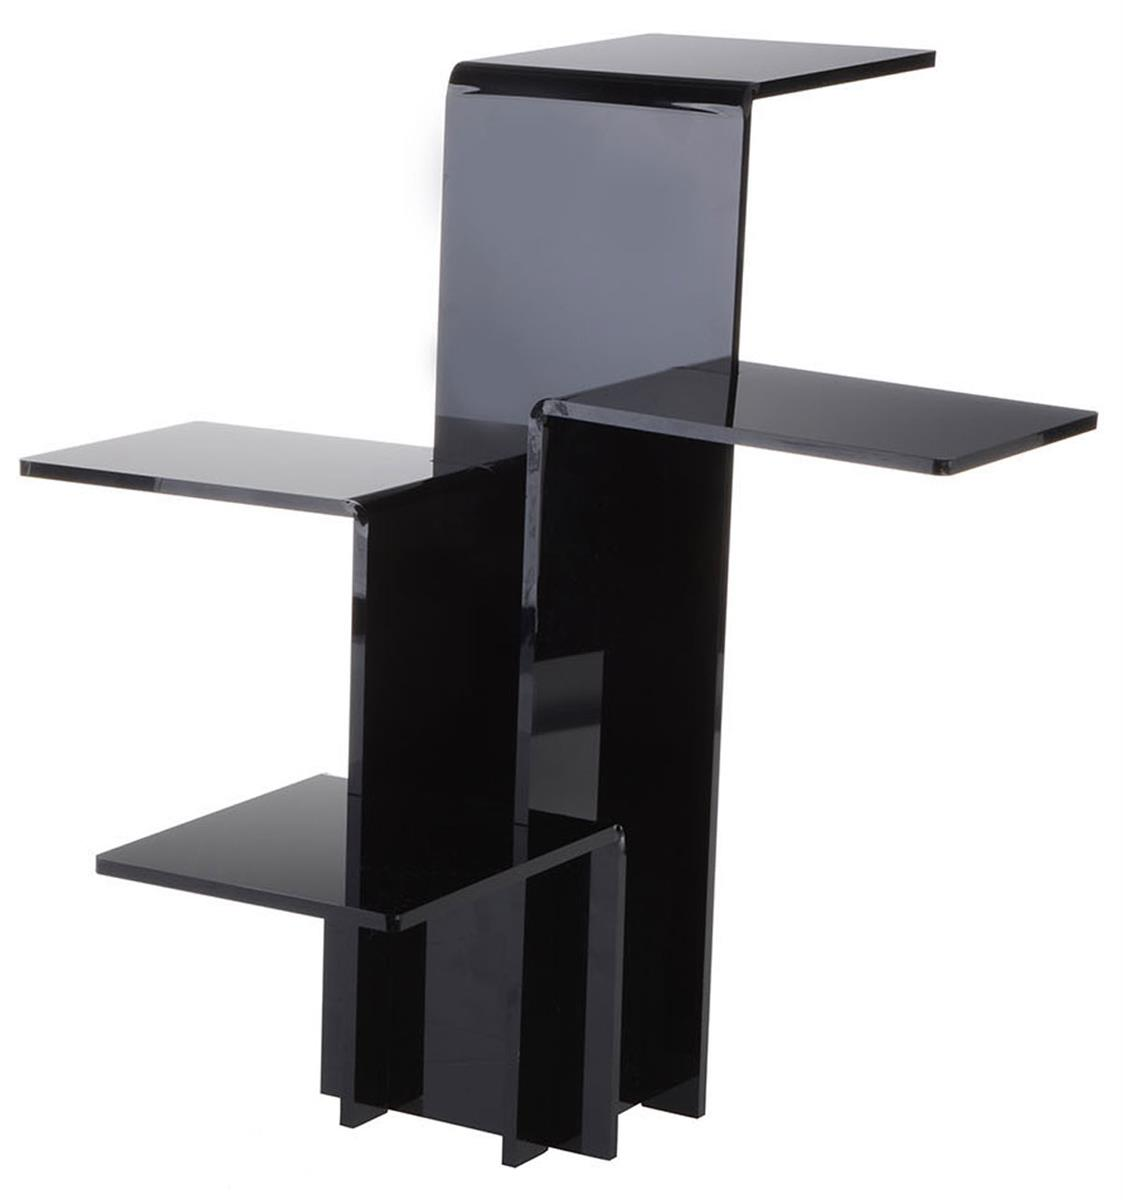 Pedestal Riser Store Accessories Display Jewelry